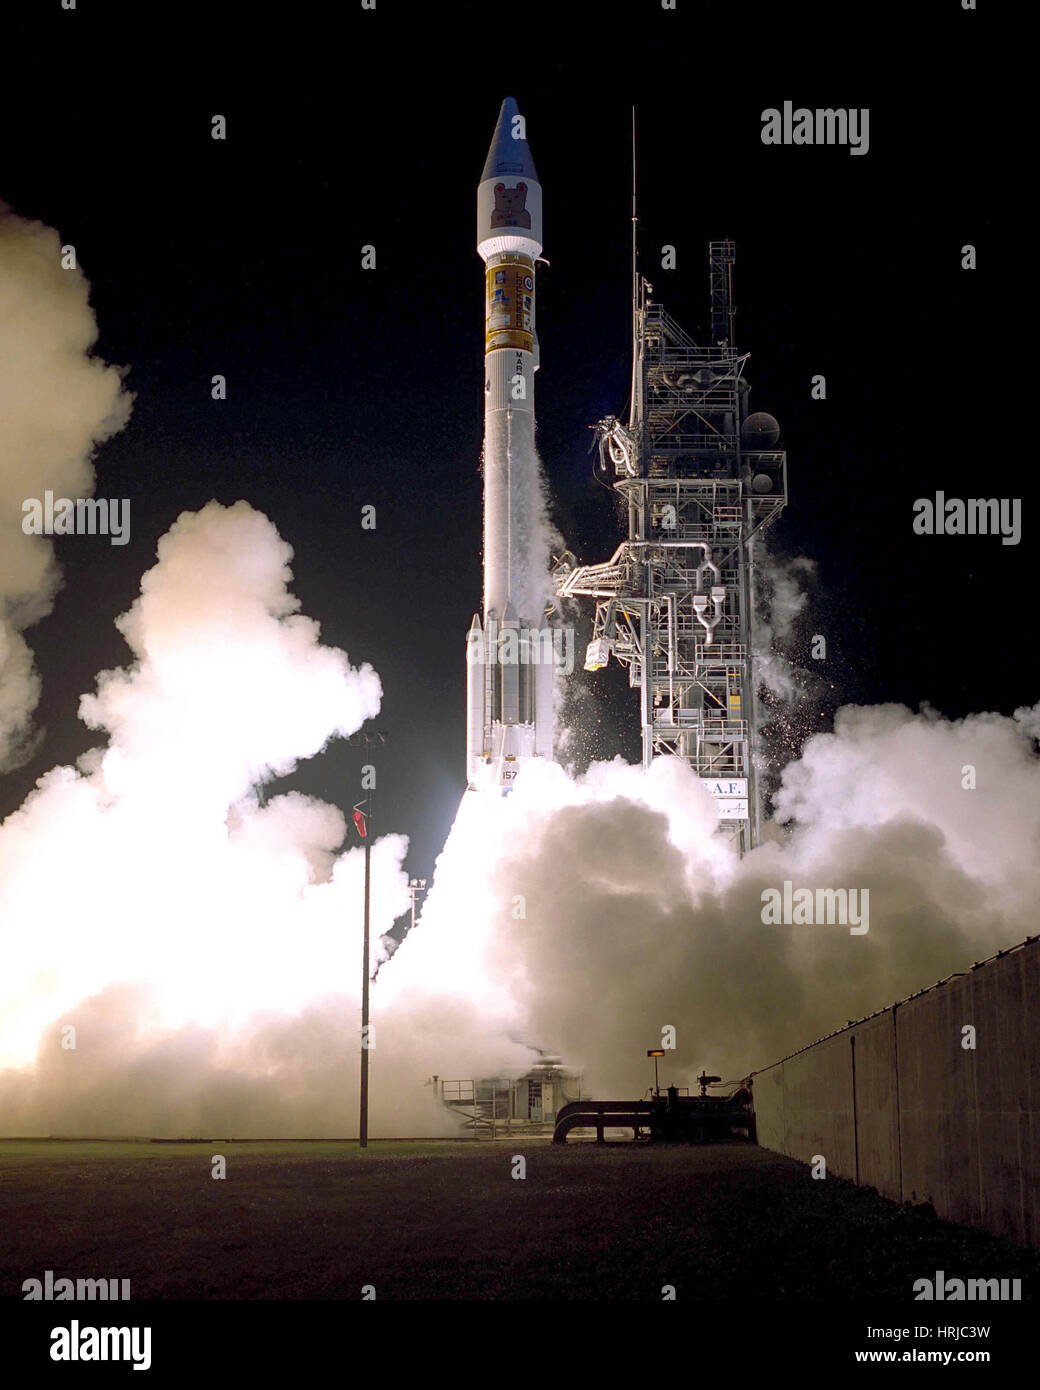 Atlas 2AS Rocket Launch - Stock Image